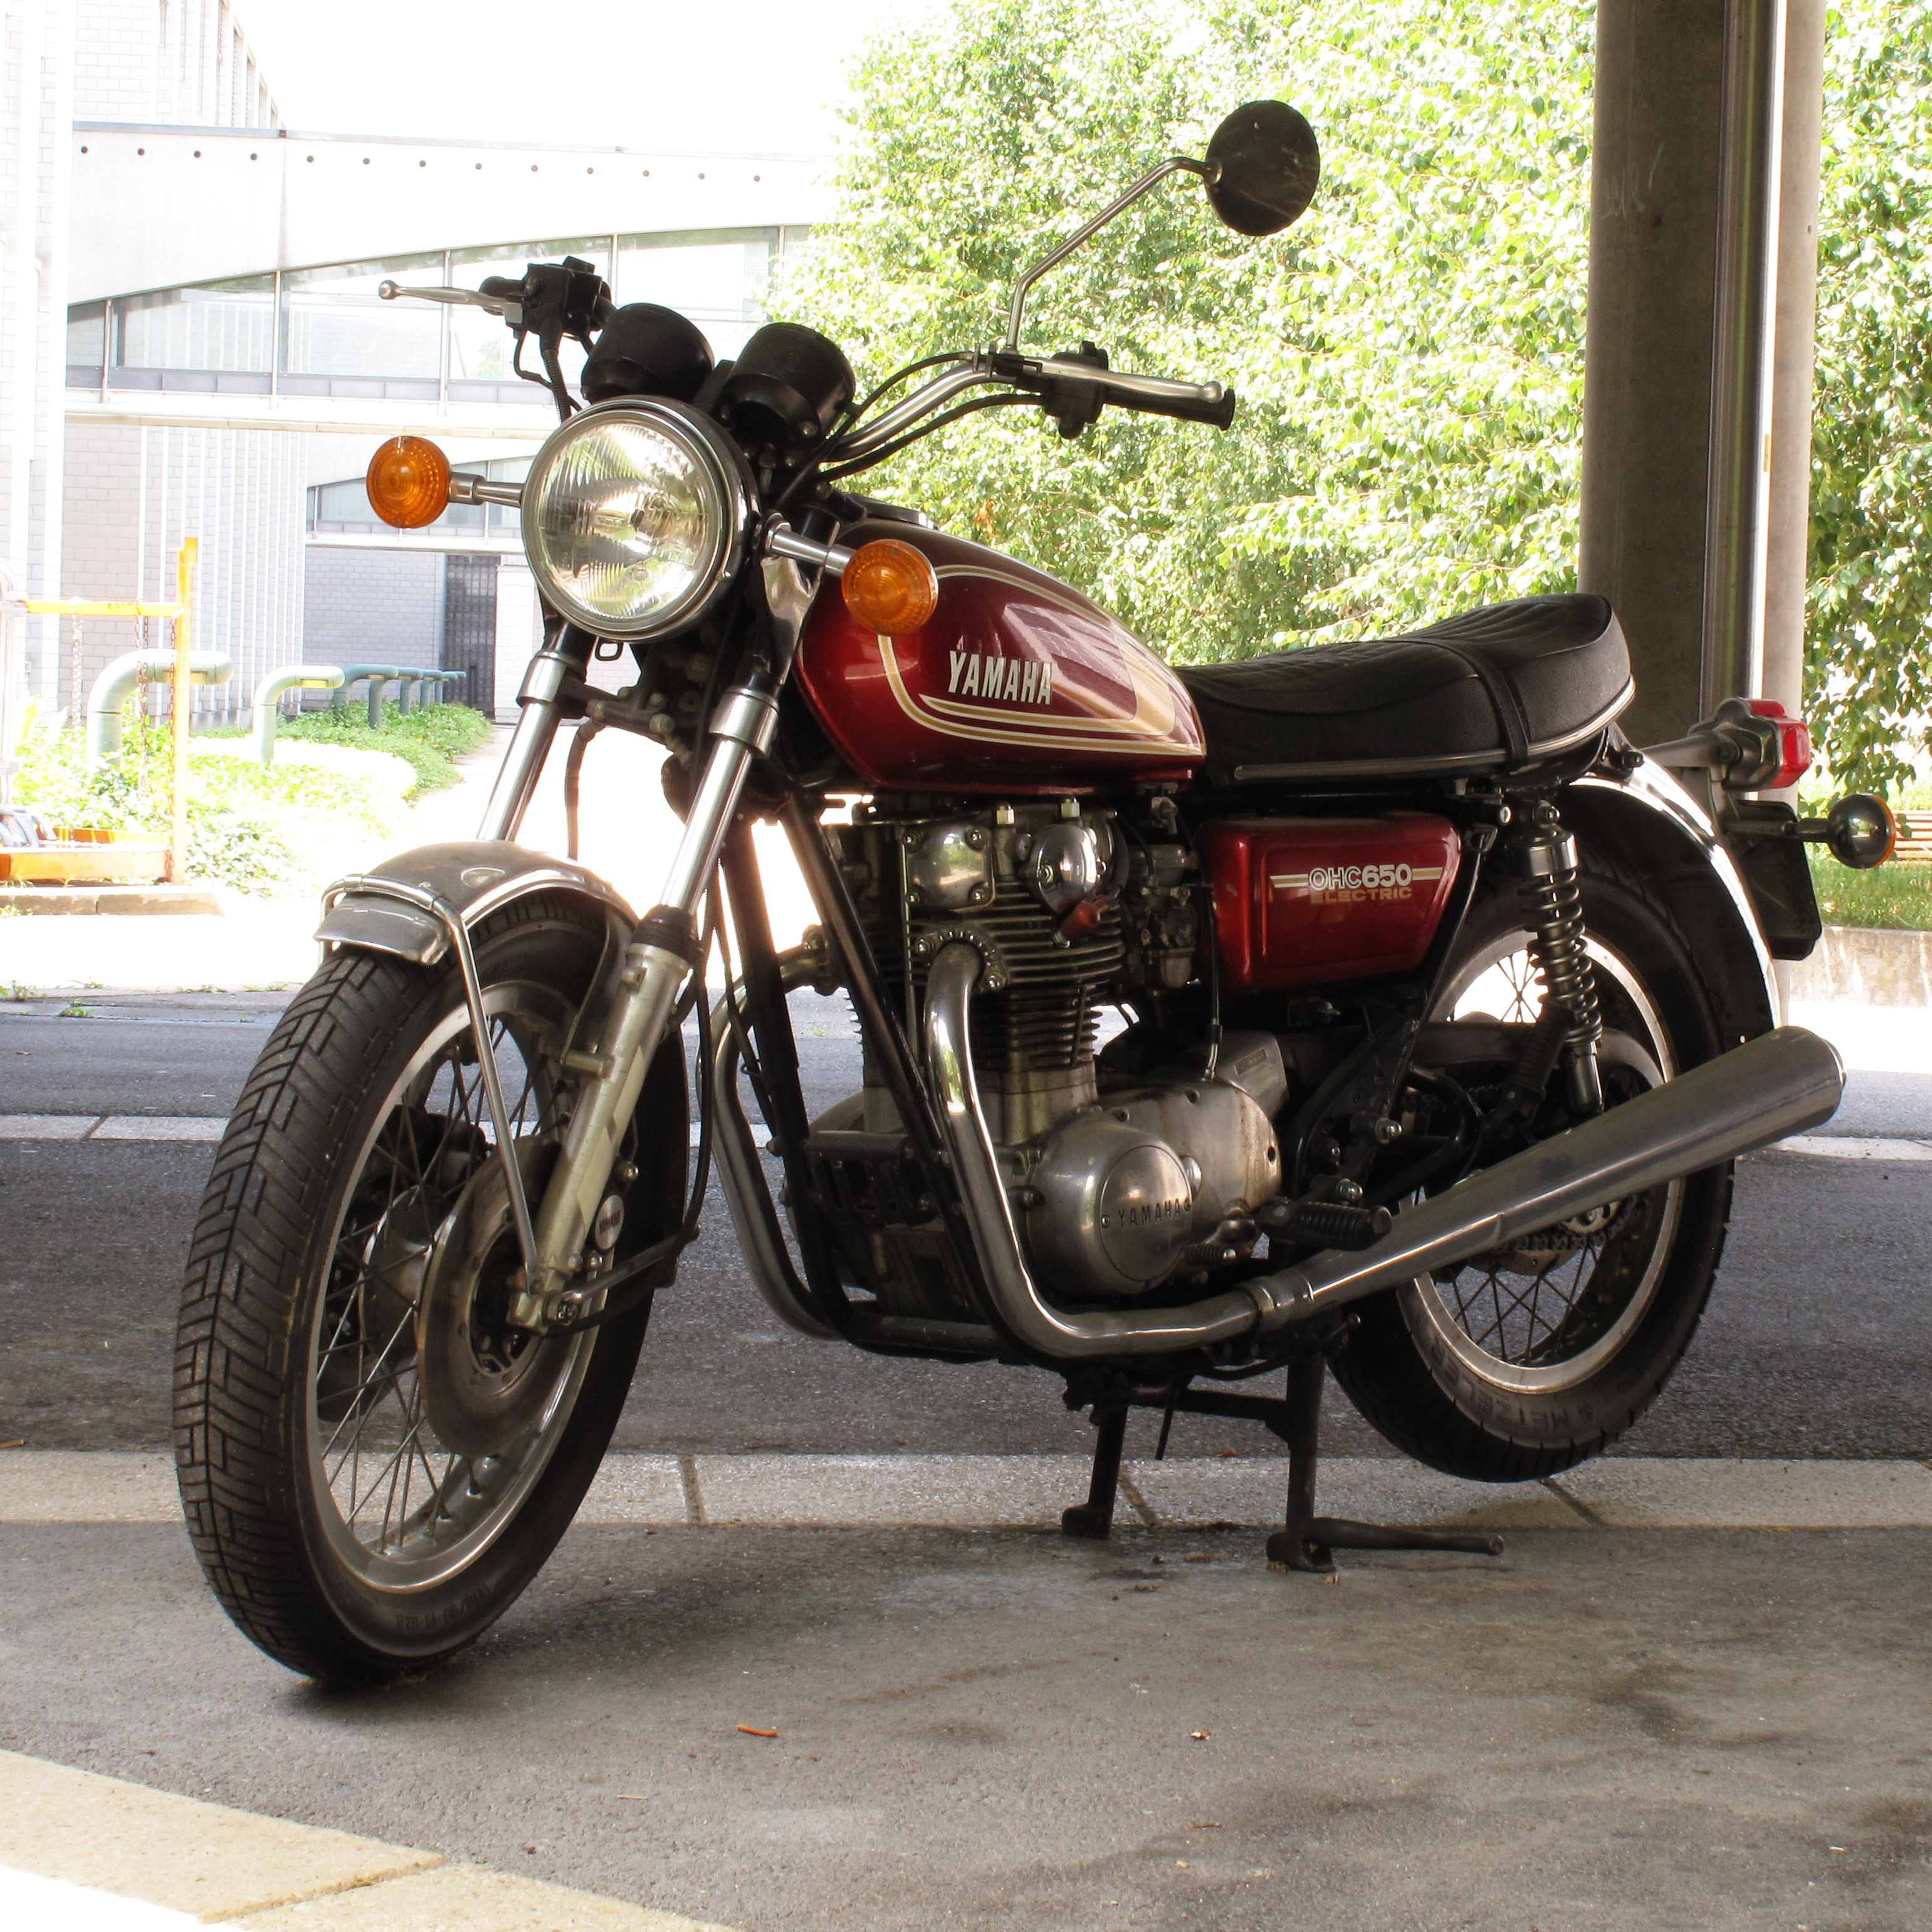 Yamaha AT 125 1970 images #155471